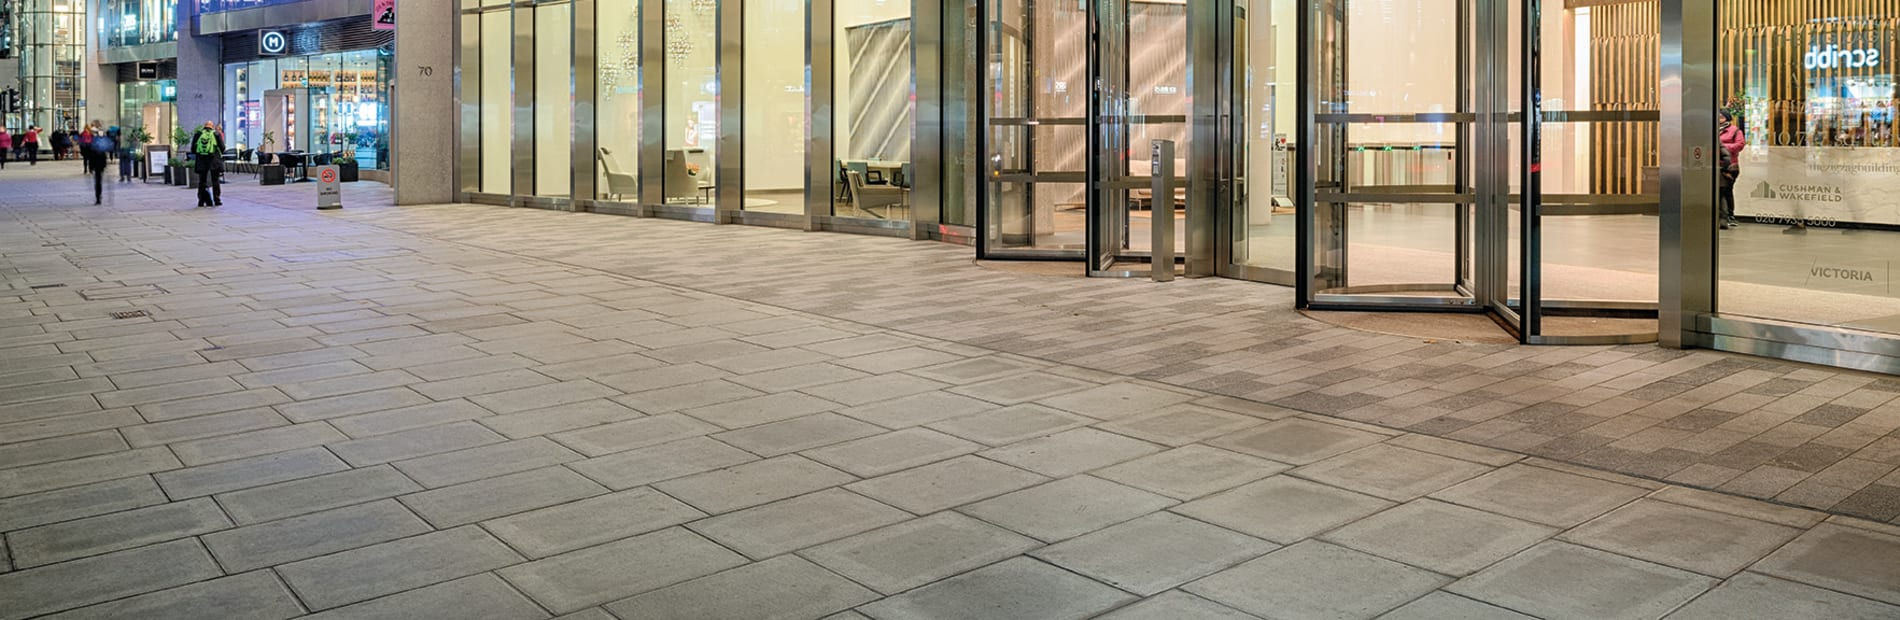 despina granite paving laid outside a building